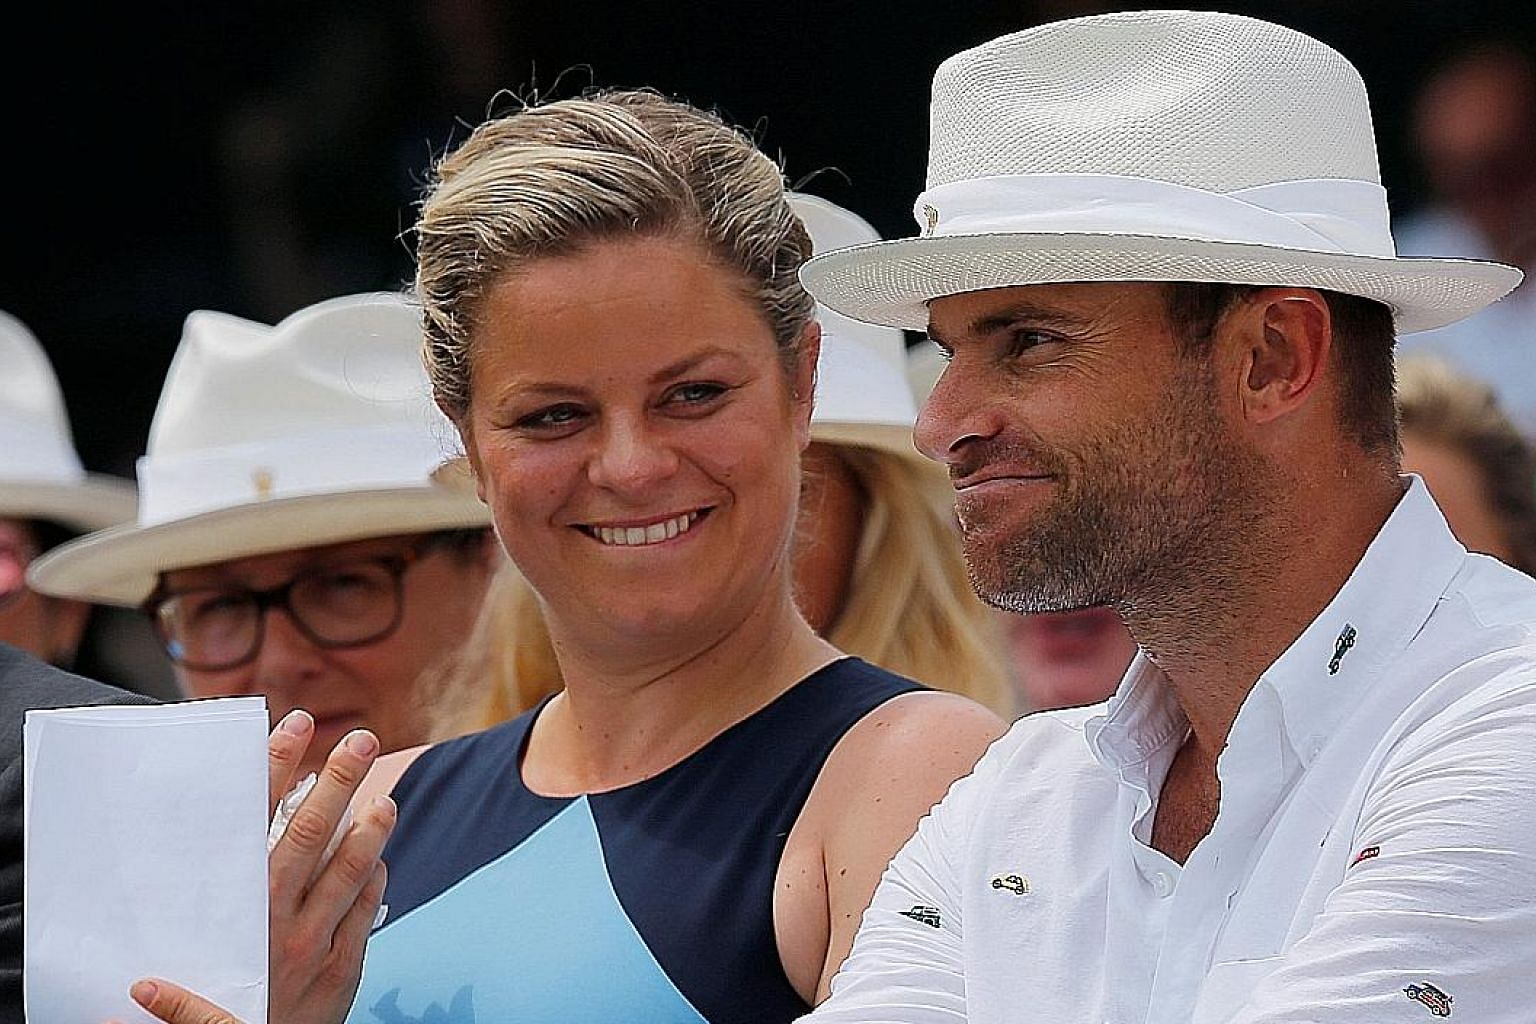 Former top-ranked players Kim Clijsters of Belgium and American Andy Roddick, both 34, waiting to be inducted into the International Tennis Hall of Fame in Newport, Rhode Island. Clijsters won four Grand Slam singles titles while Roddick was victorio